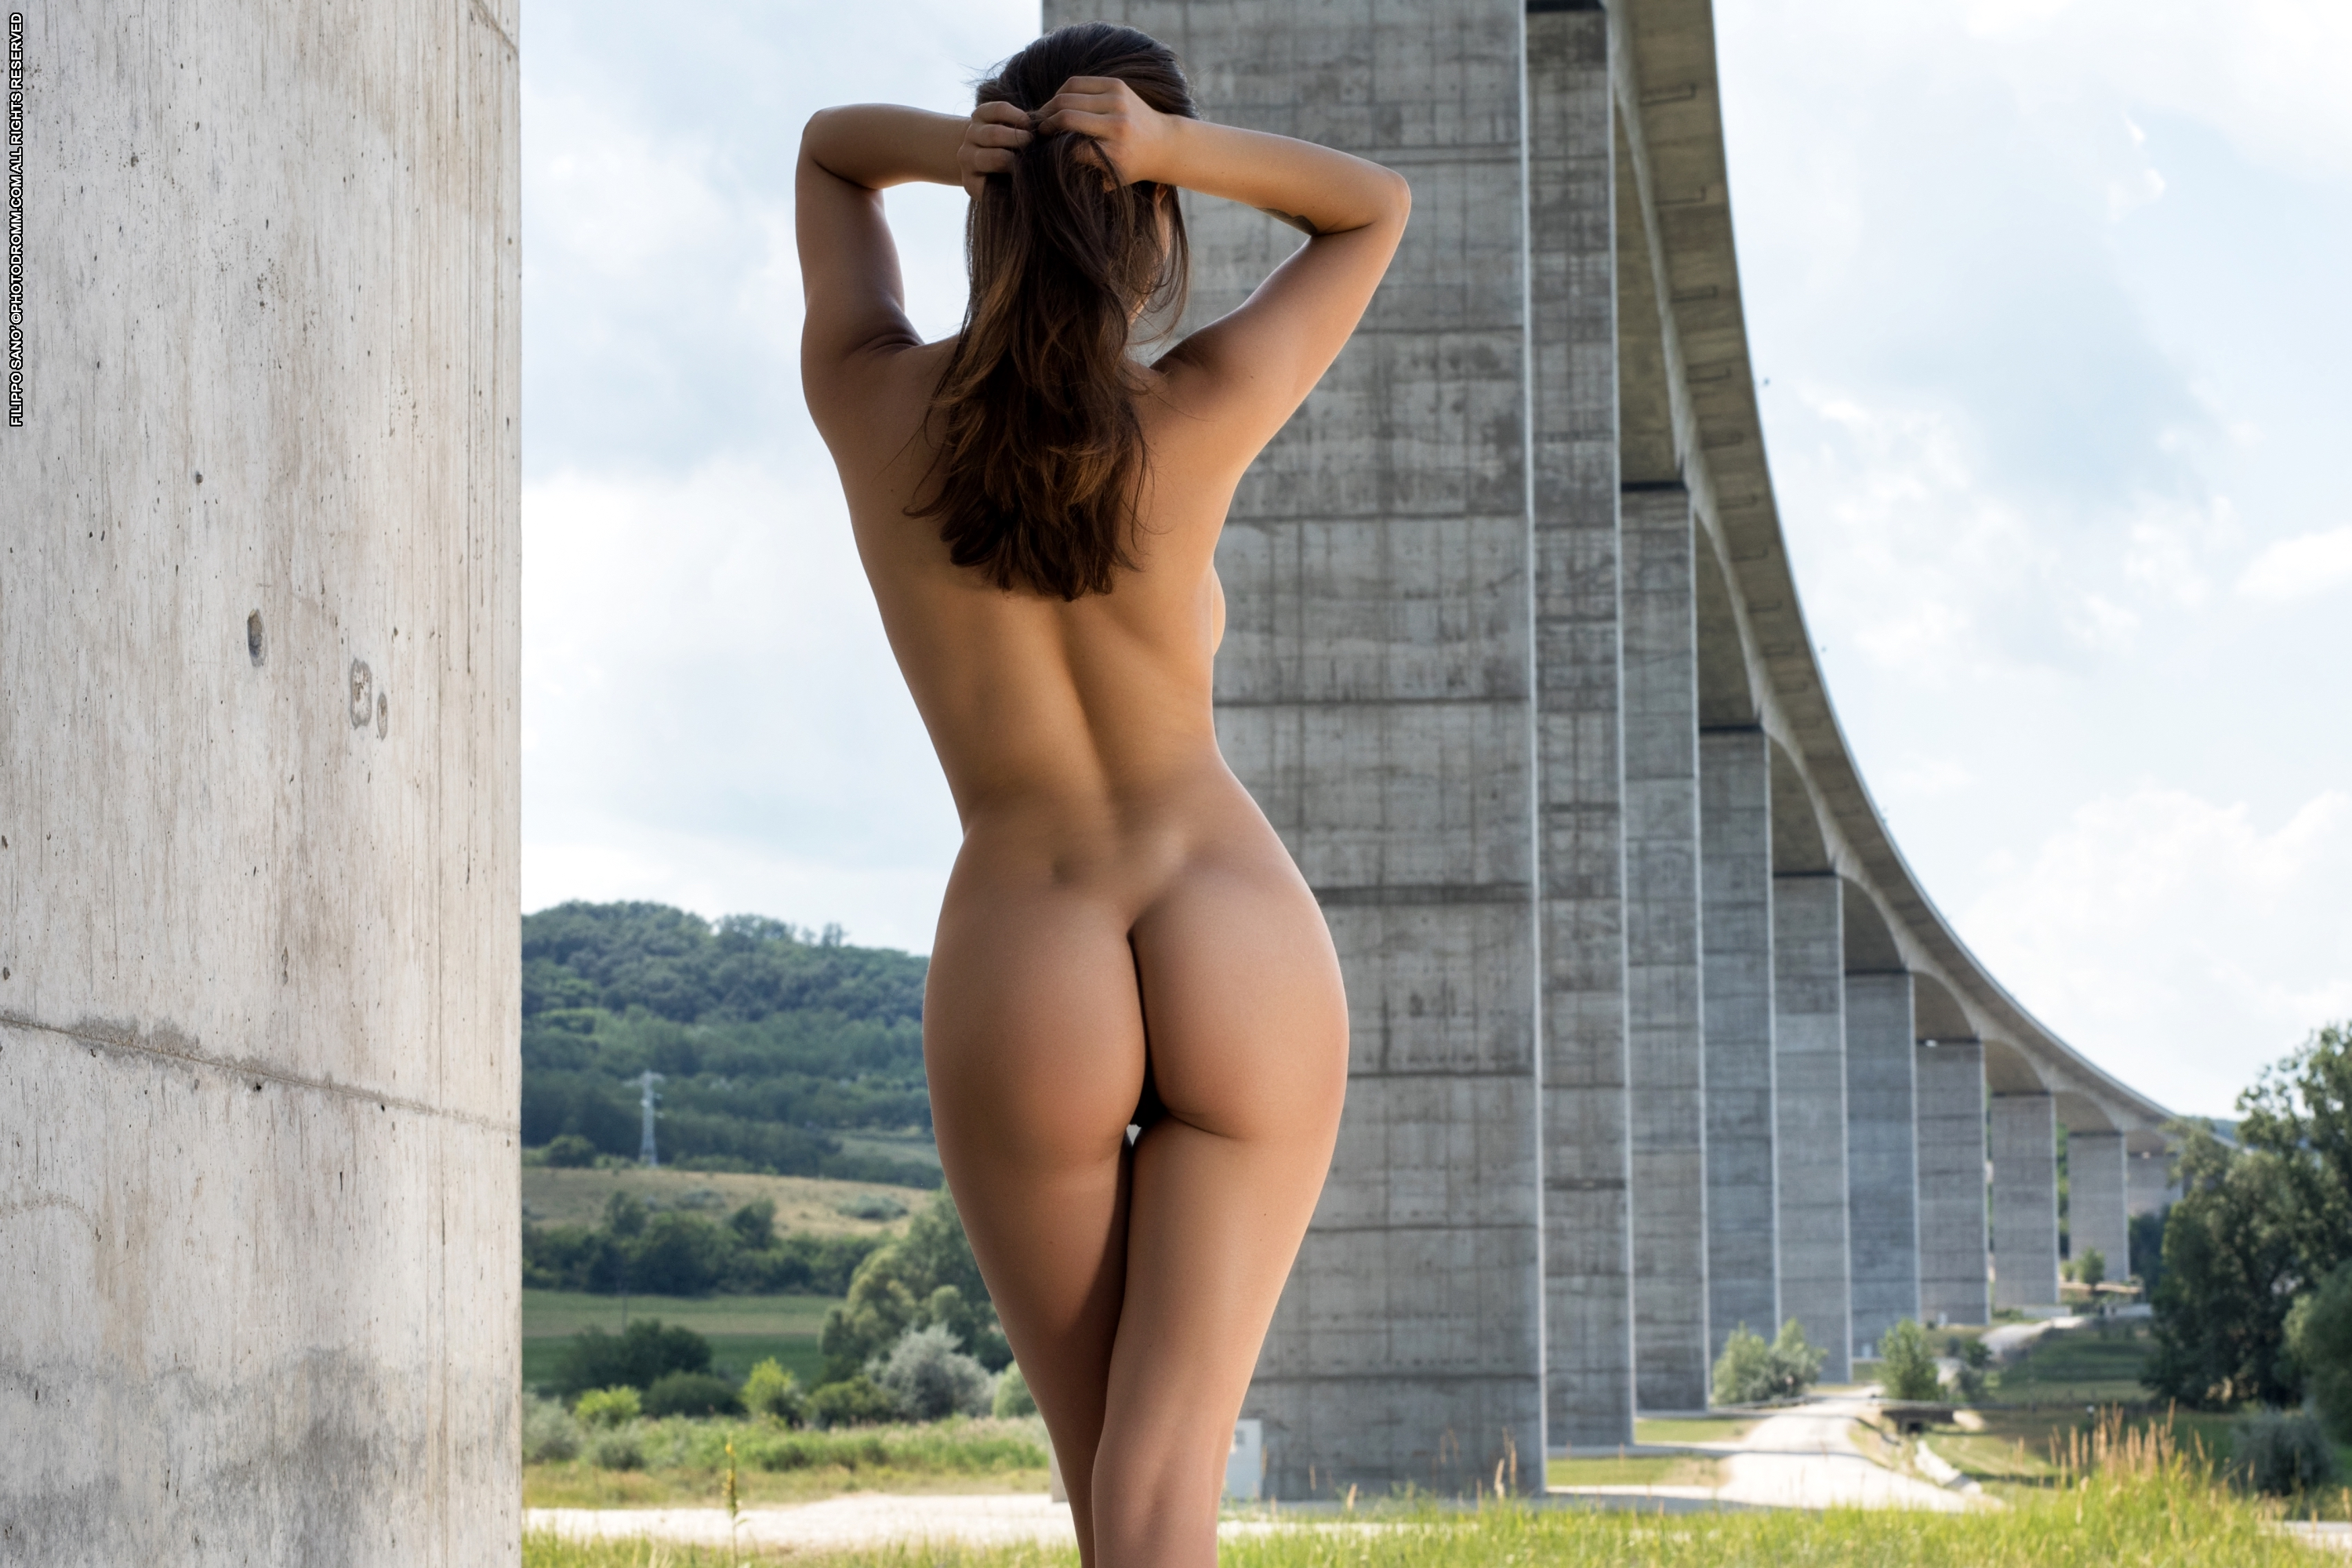 Women Sexy Asses In The Air Naked